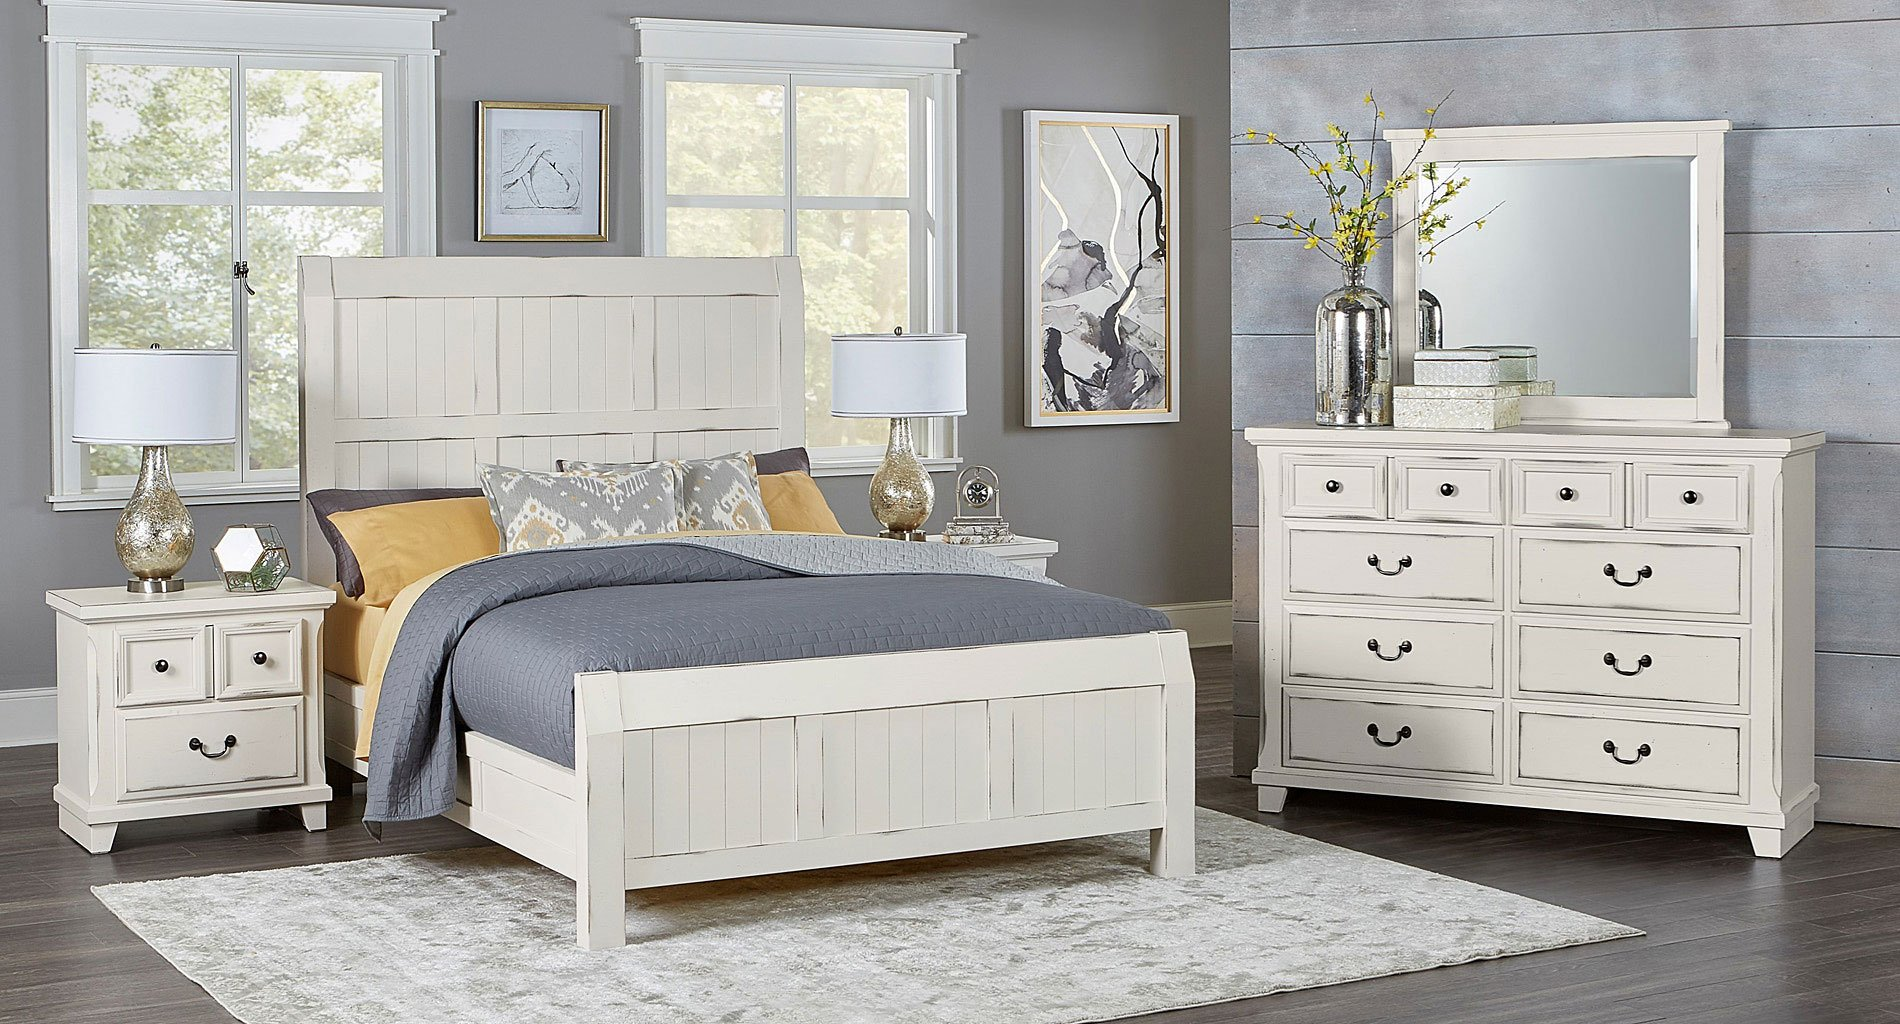 Timber creek bedroom set distressed white vaughan - Distressed bedroom furniture sets ...